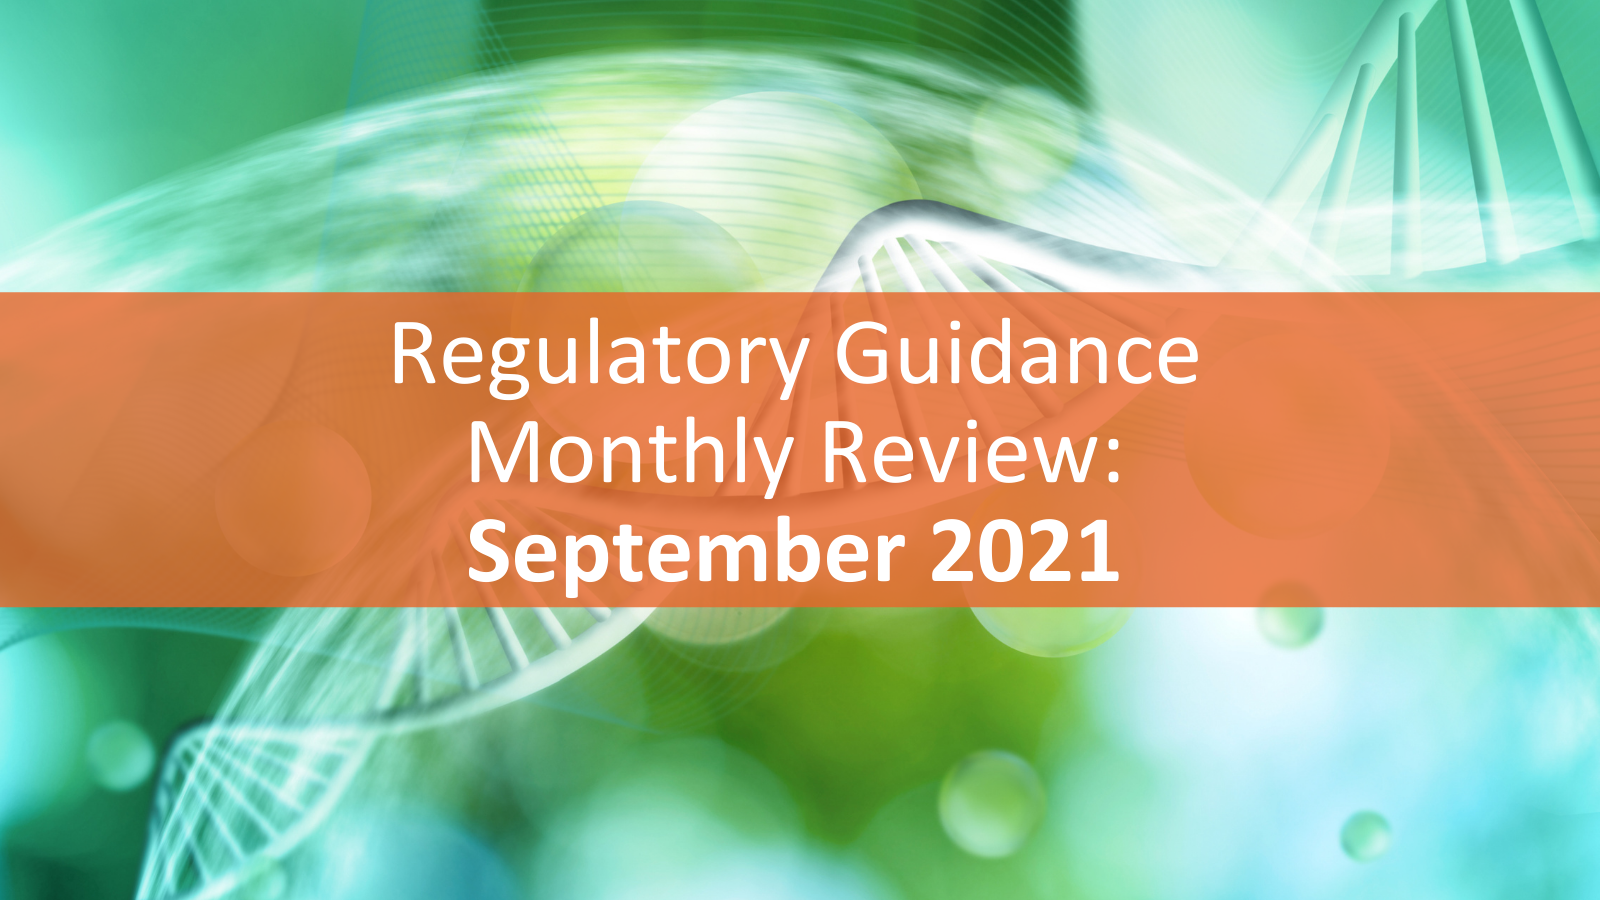 Regulatory Guidance Monthly Review - Sept 2021